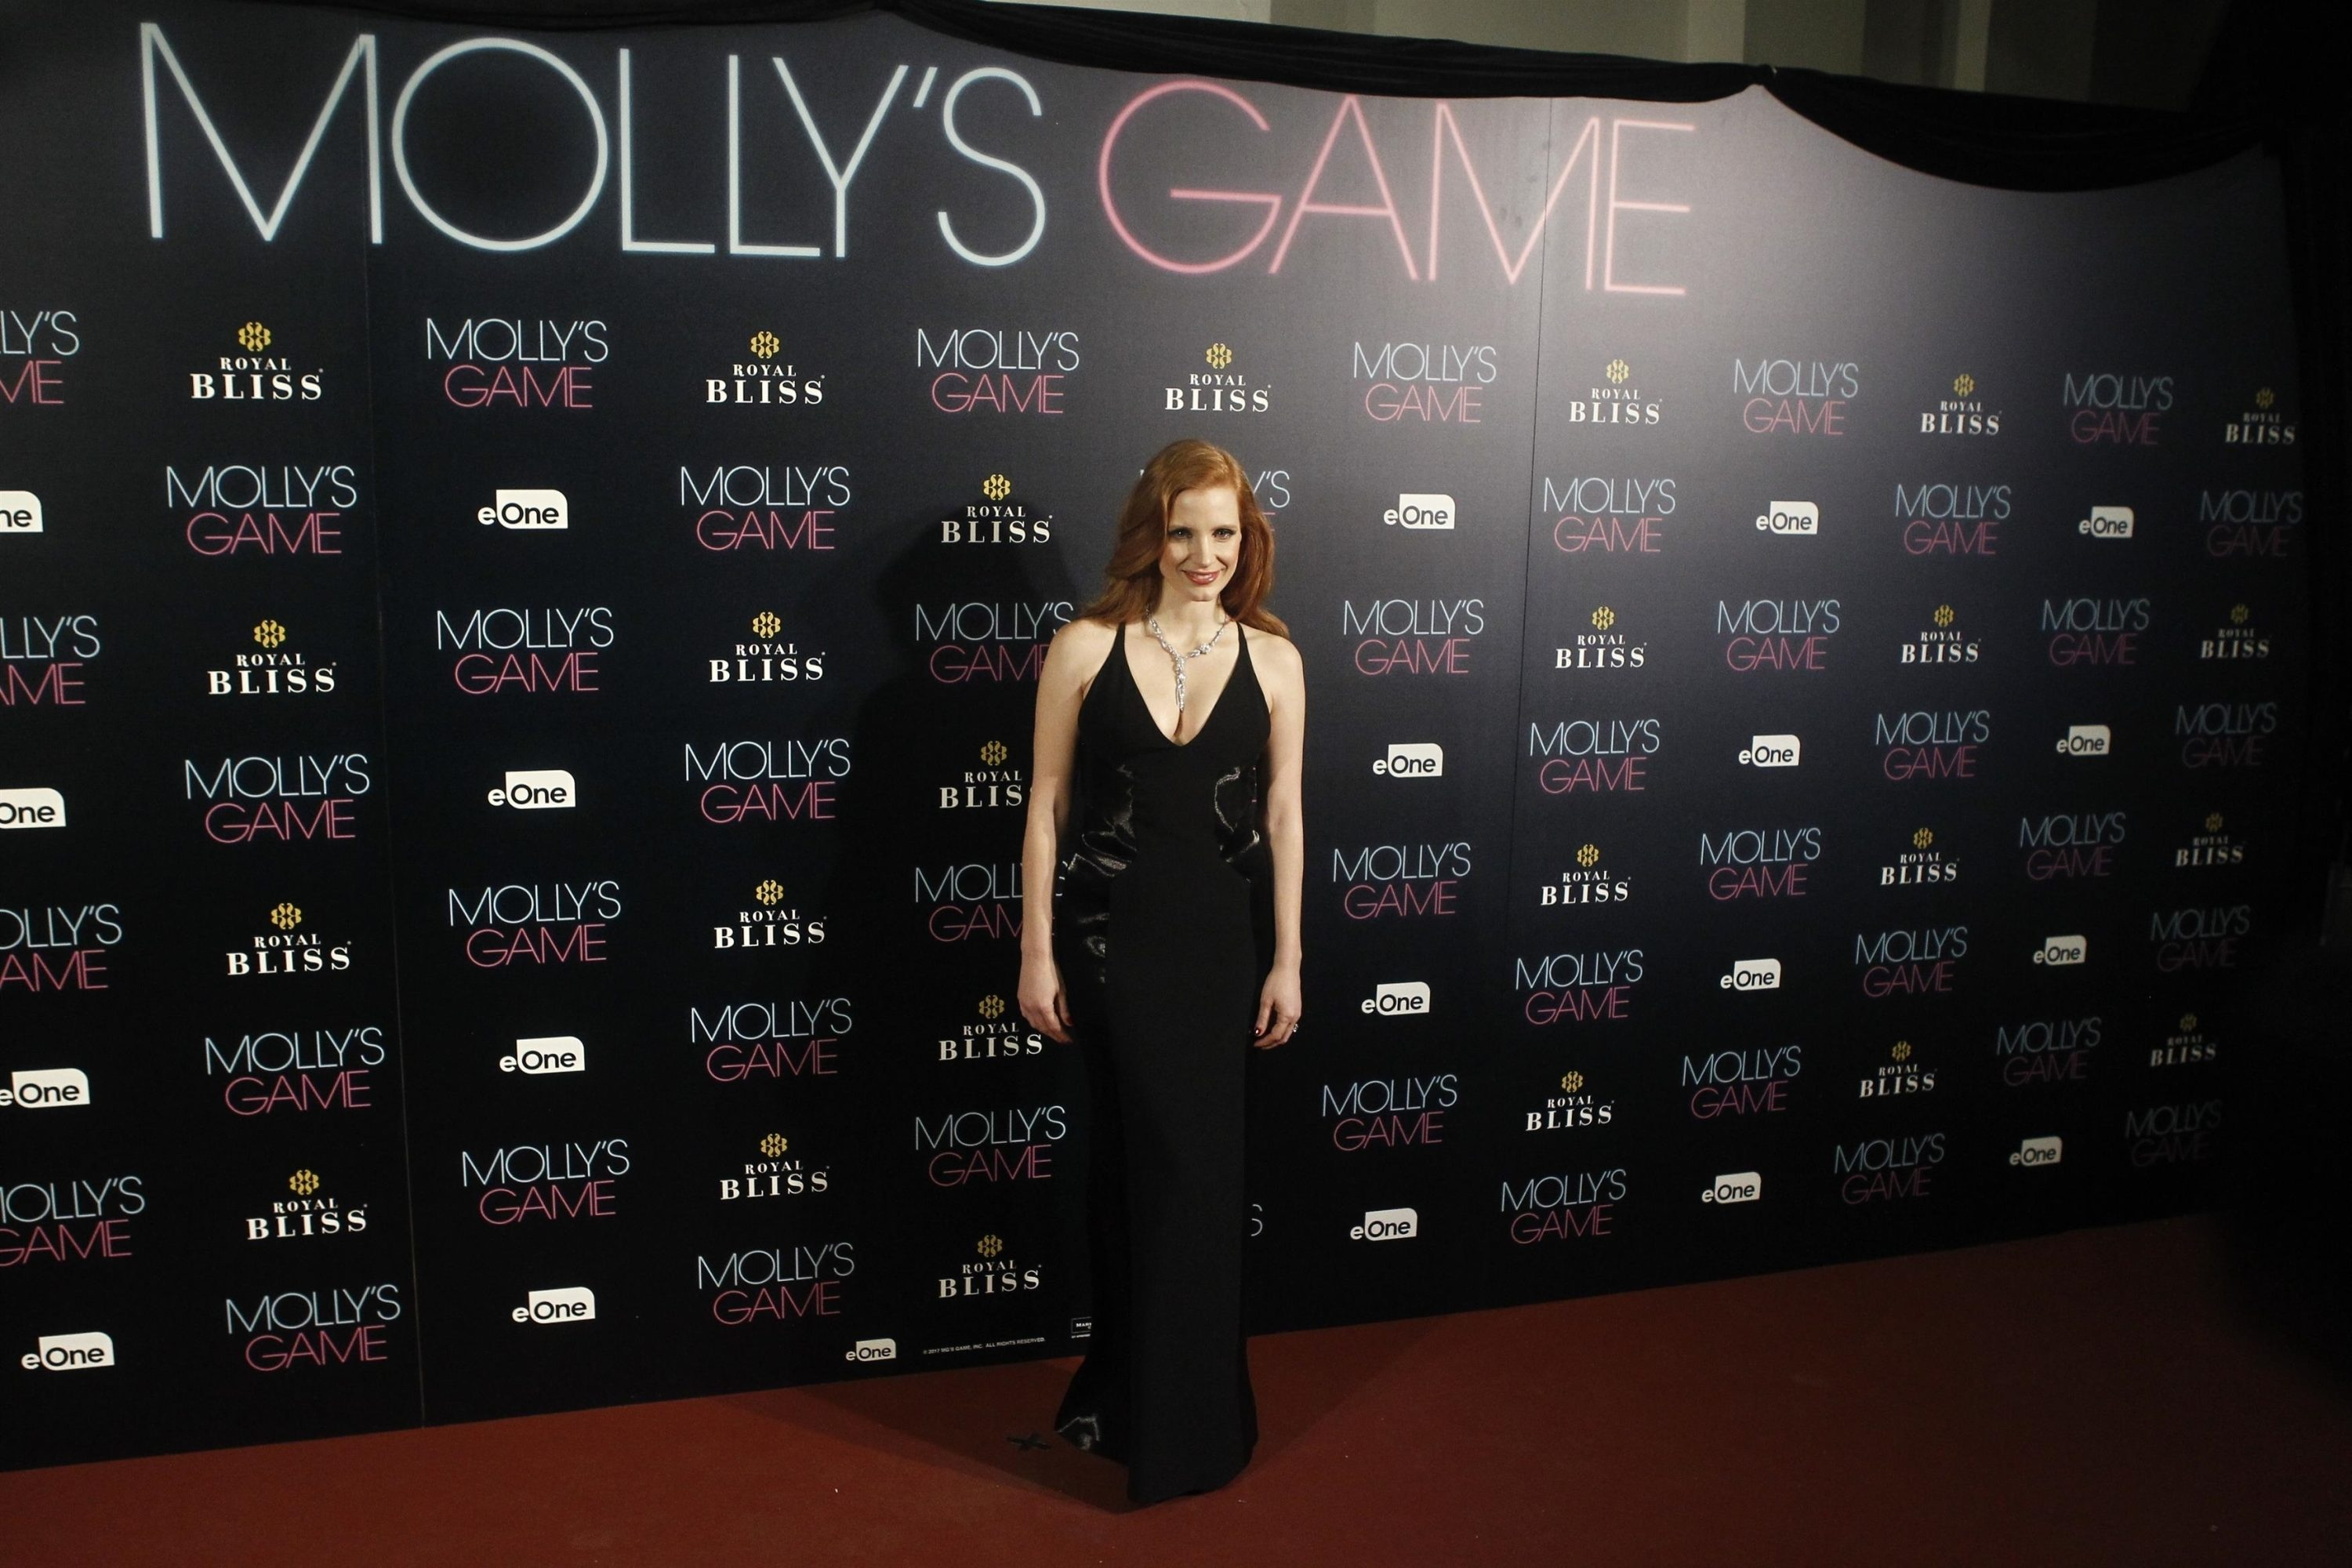 MOLLY'S GAME | Premiere e photocall em Madrid